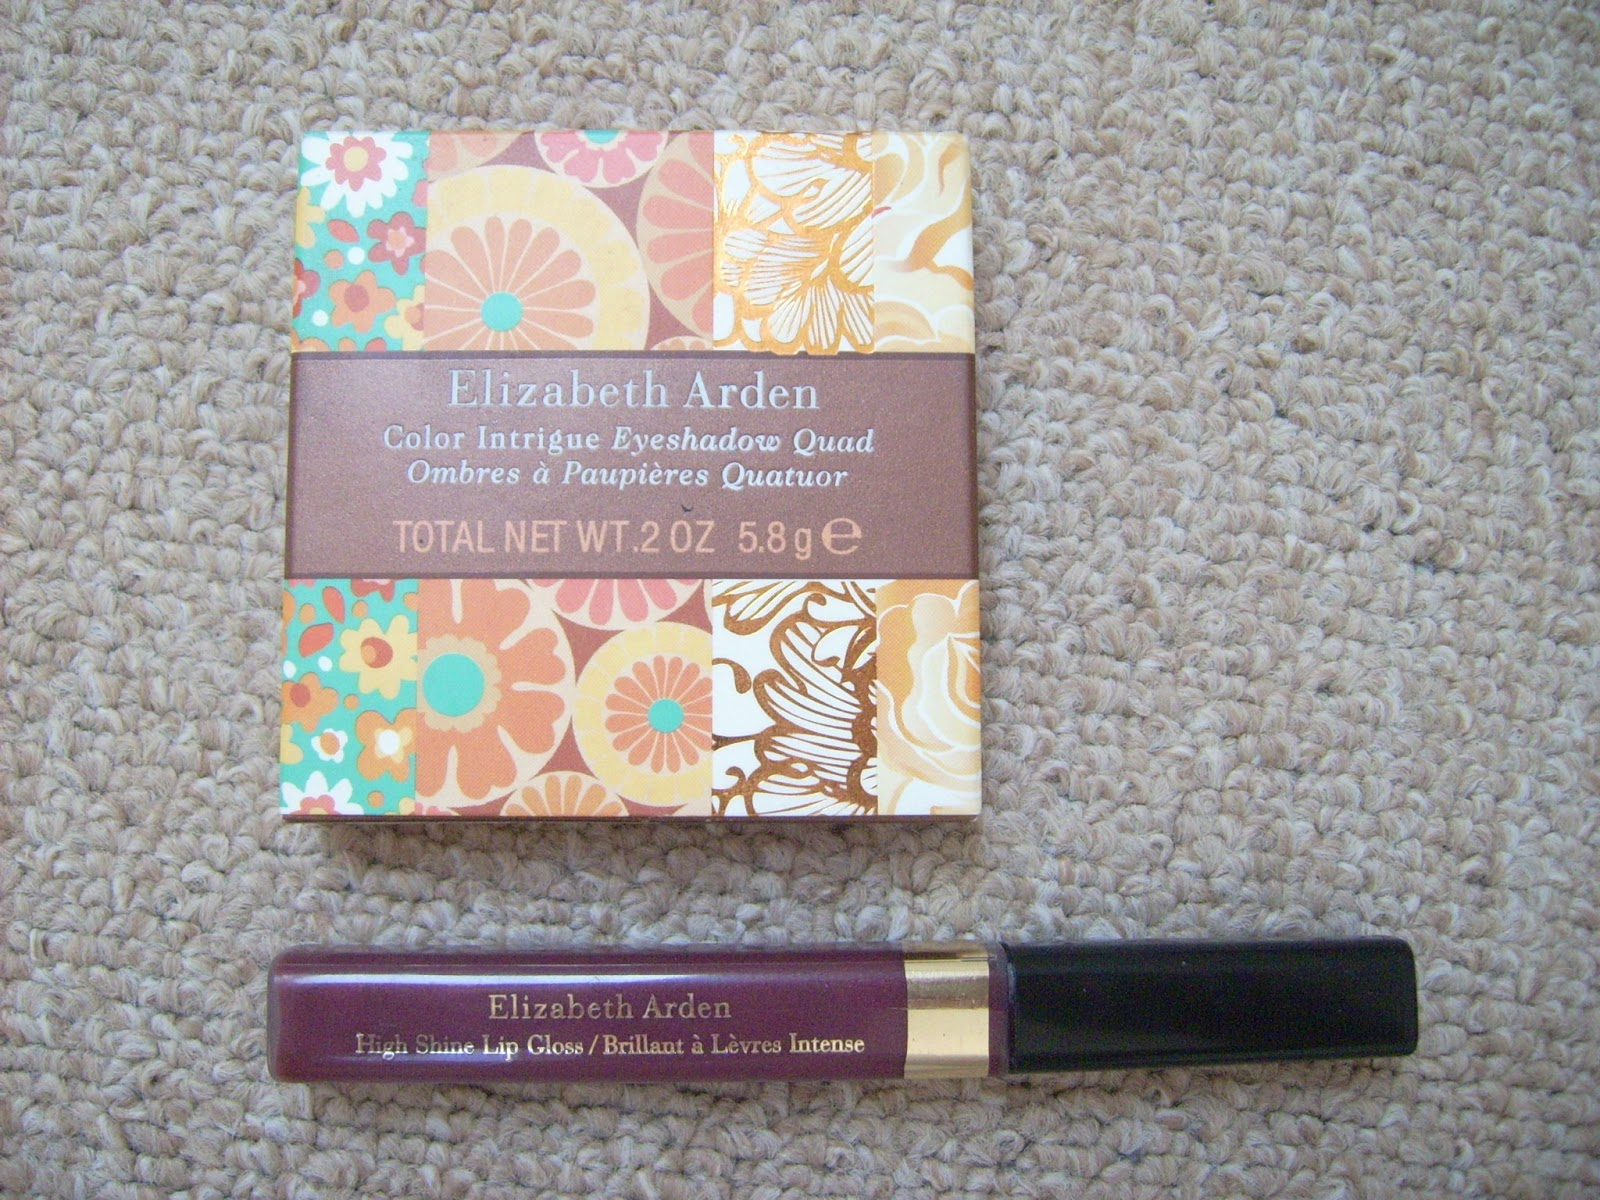 Elizabeth Arden Color Intrigue Eyeshadow Quad Golden Lilac, Elizabeth Arden High Shine Lip Gloss Raspberry Glace